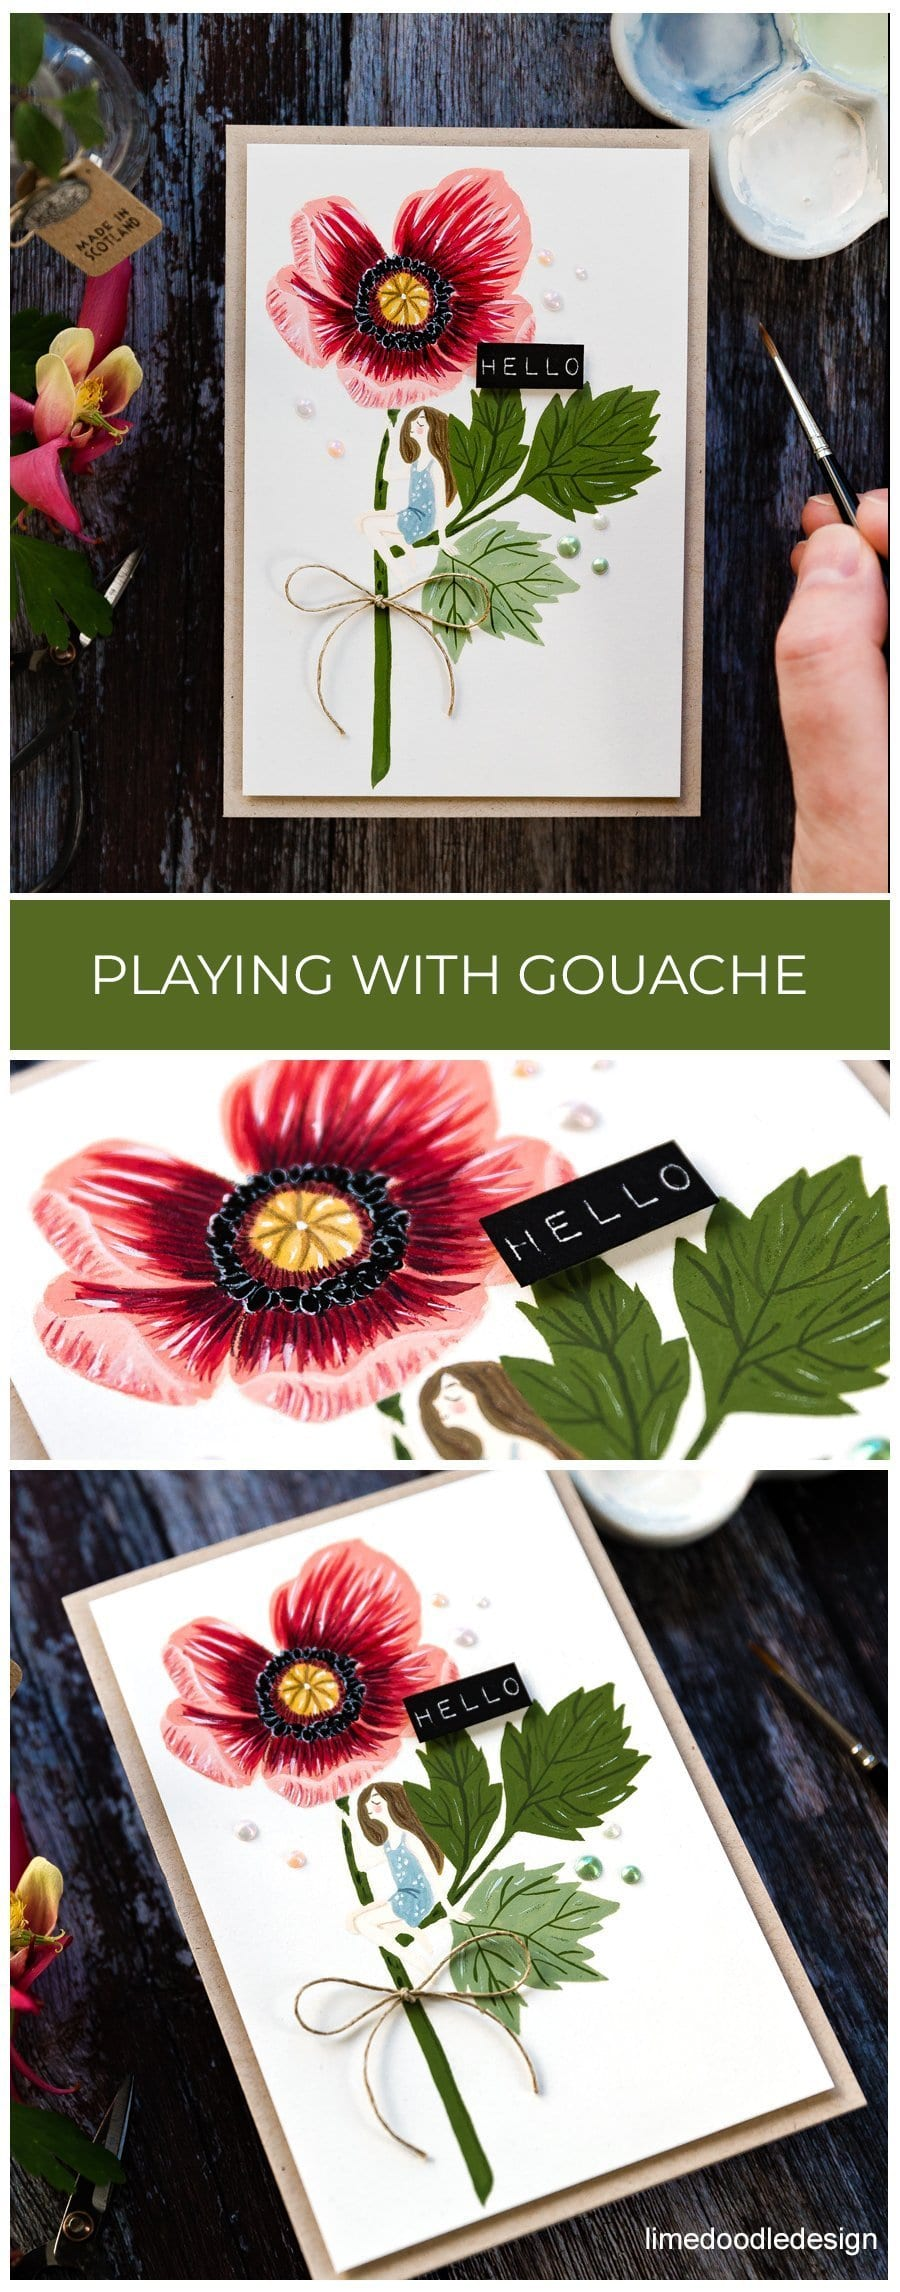 Miving gouache with watercolour handmade poppy card by Debby Hughes using supplies from Waffle Flower designed by Oana Befort. Find out more here: https://limedoodledesign.com/2019/06/playing-with-gouache-waffle-flower-release/